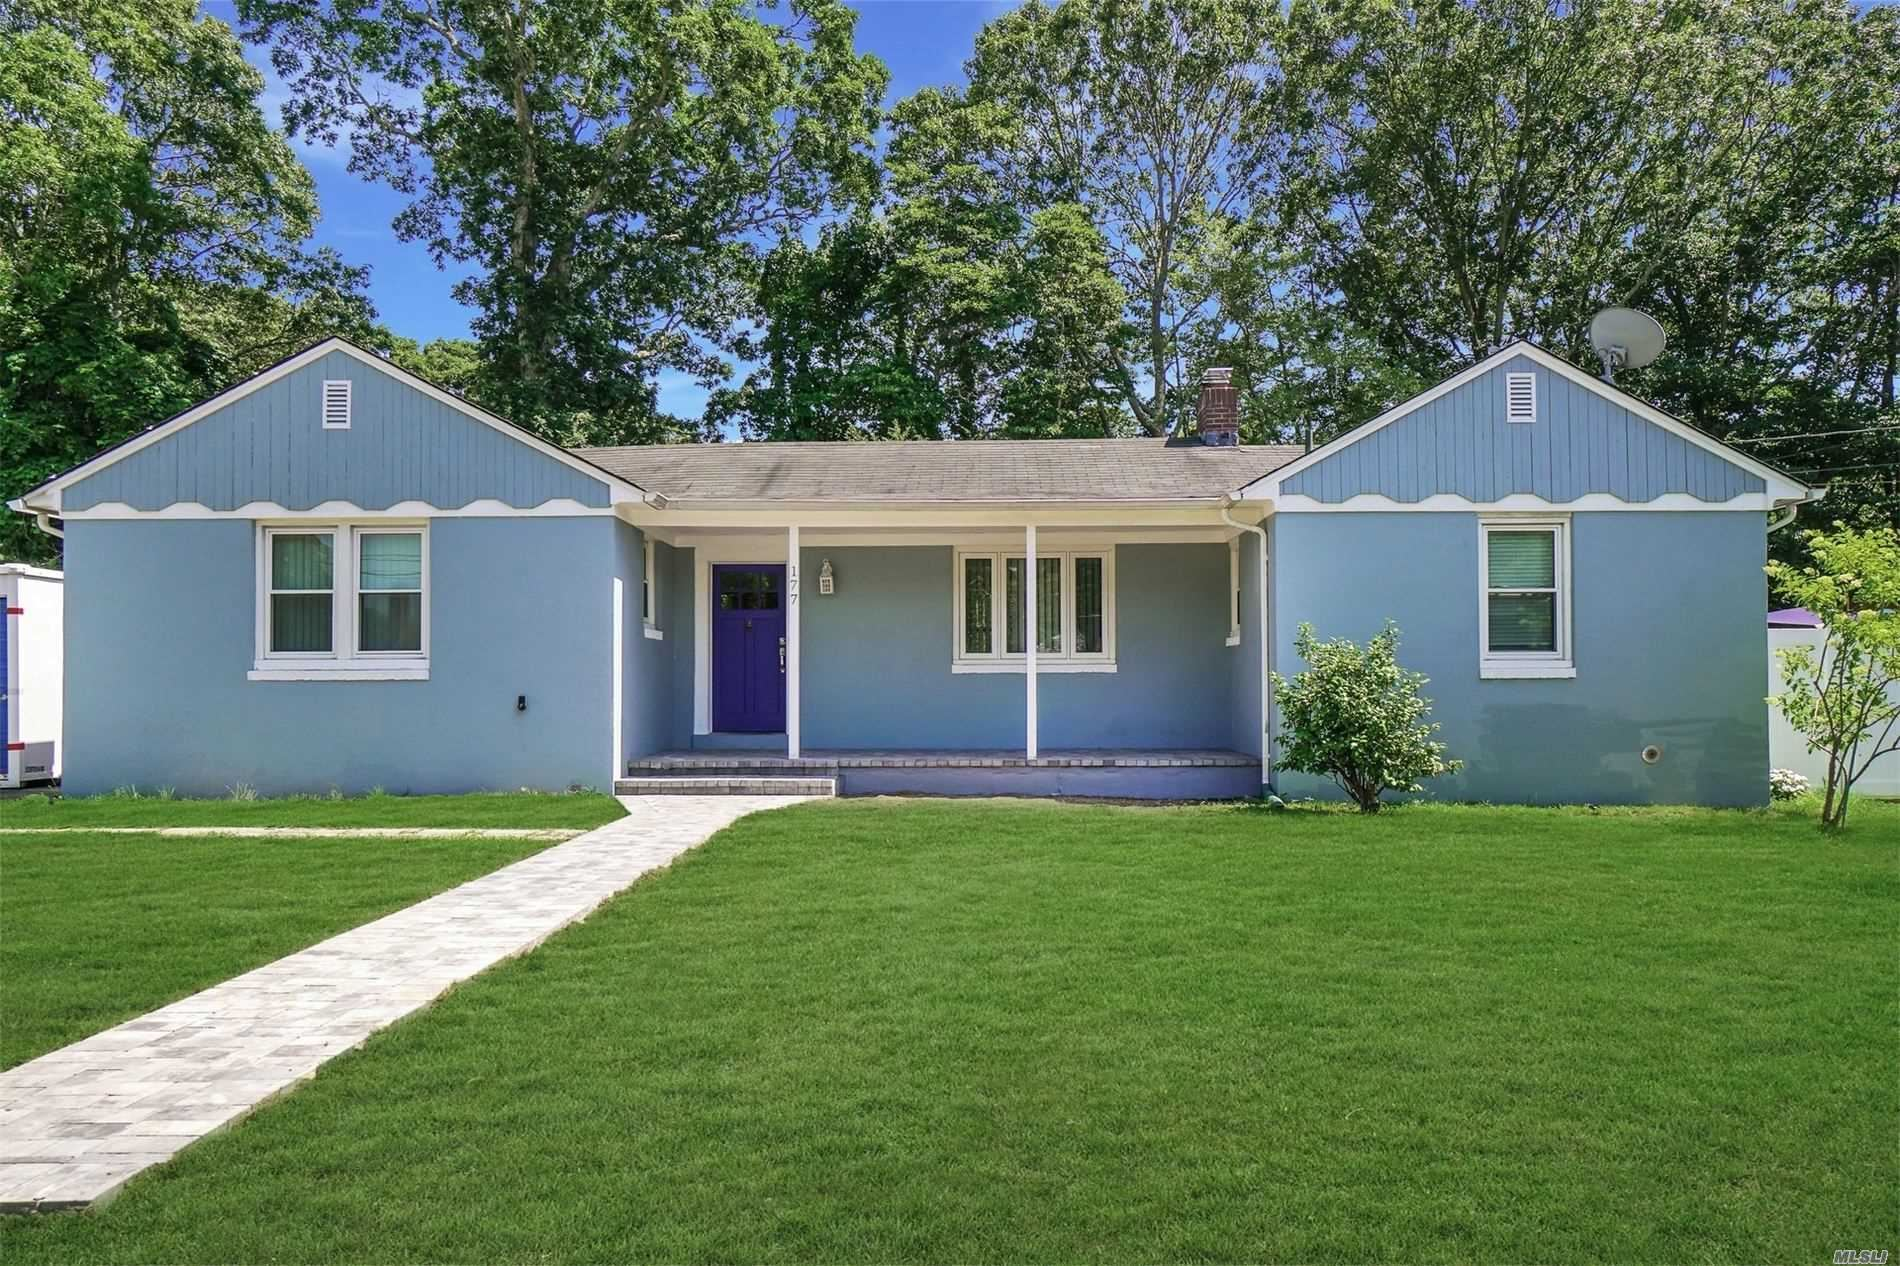 177 Donegan Avenue, Patchogue, NY 11772 - MLS#: 3238368